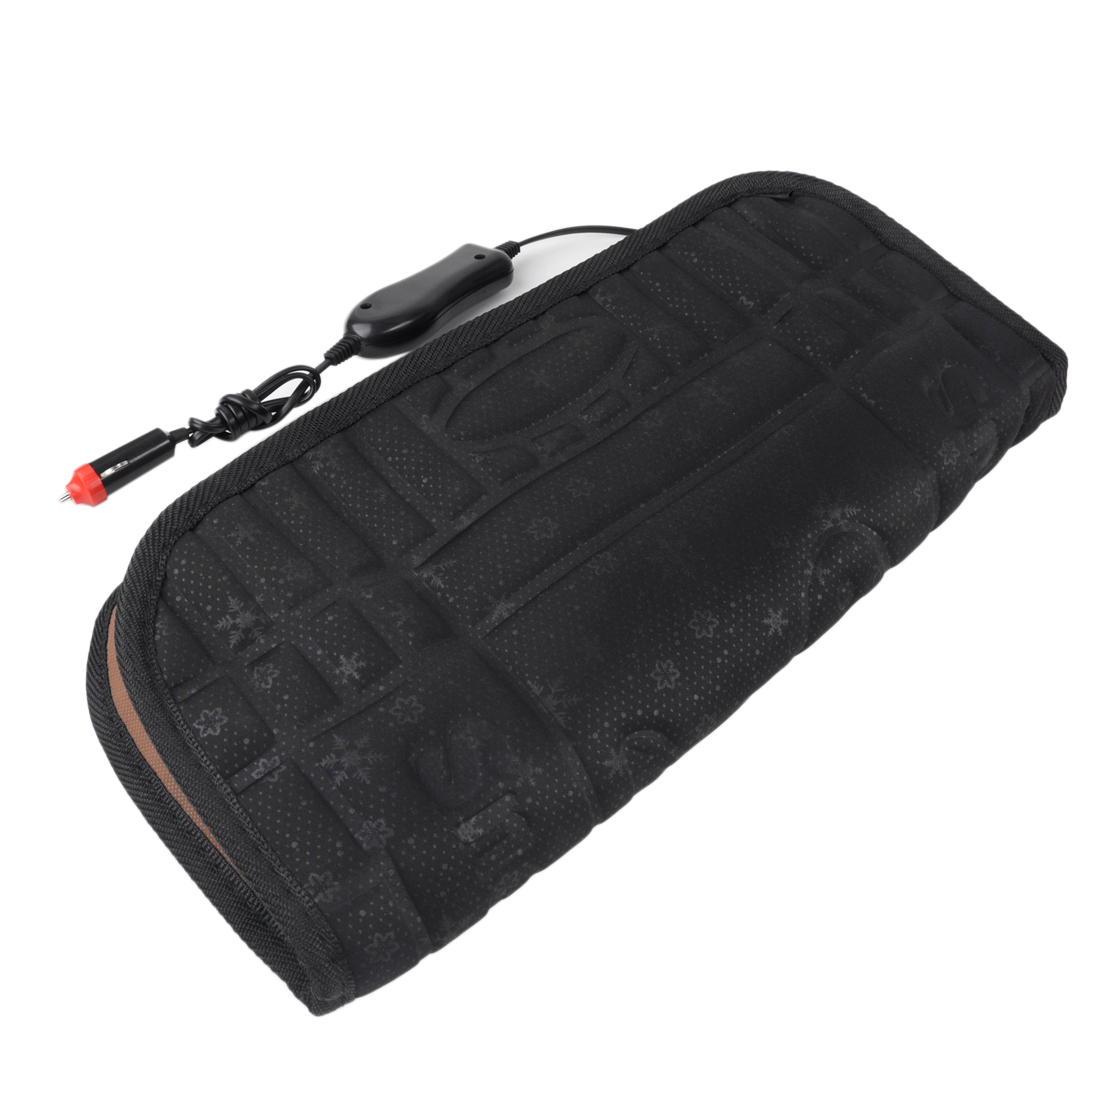 car heated seat cushion hot cover auto 12v heat heater warmer pad black ebay. Black Bedroom Furniture Sets. Home Design Ideas